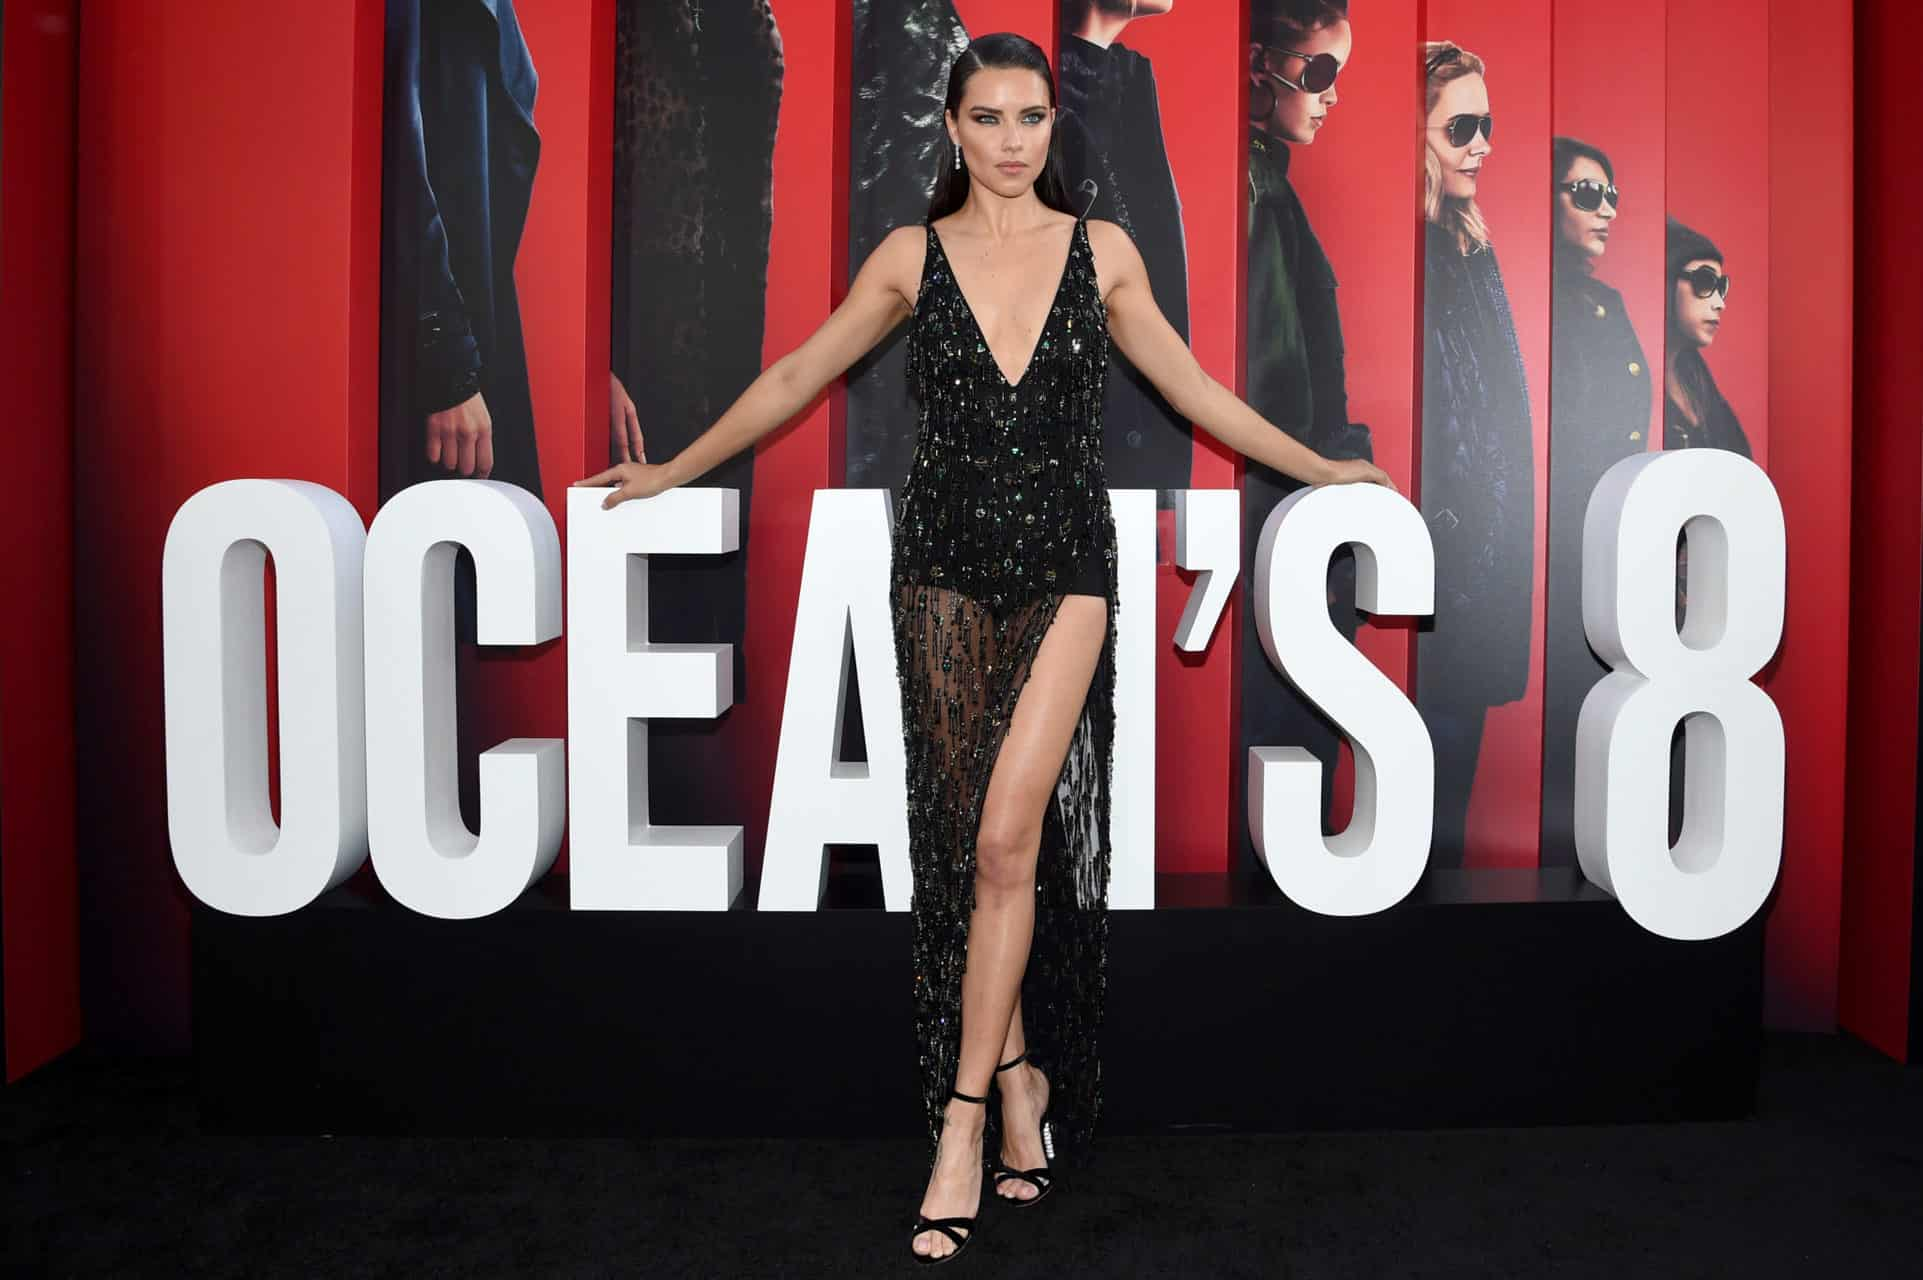 Chopard Ice Cube forever: Adriana Lima wears Chopard to the Ocean's 8 première in NYC